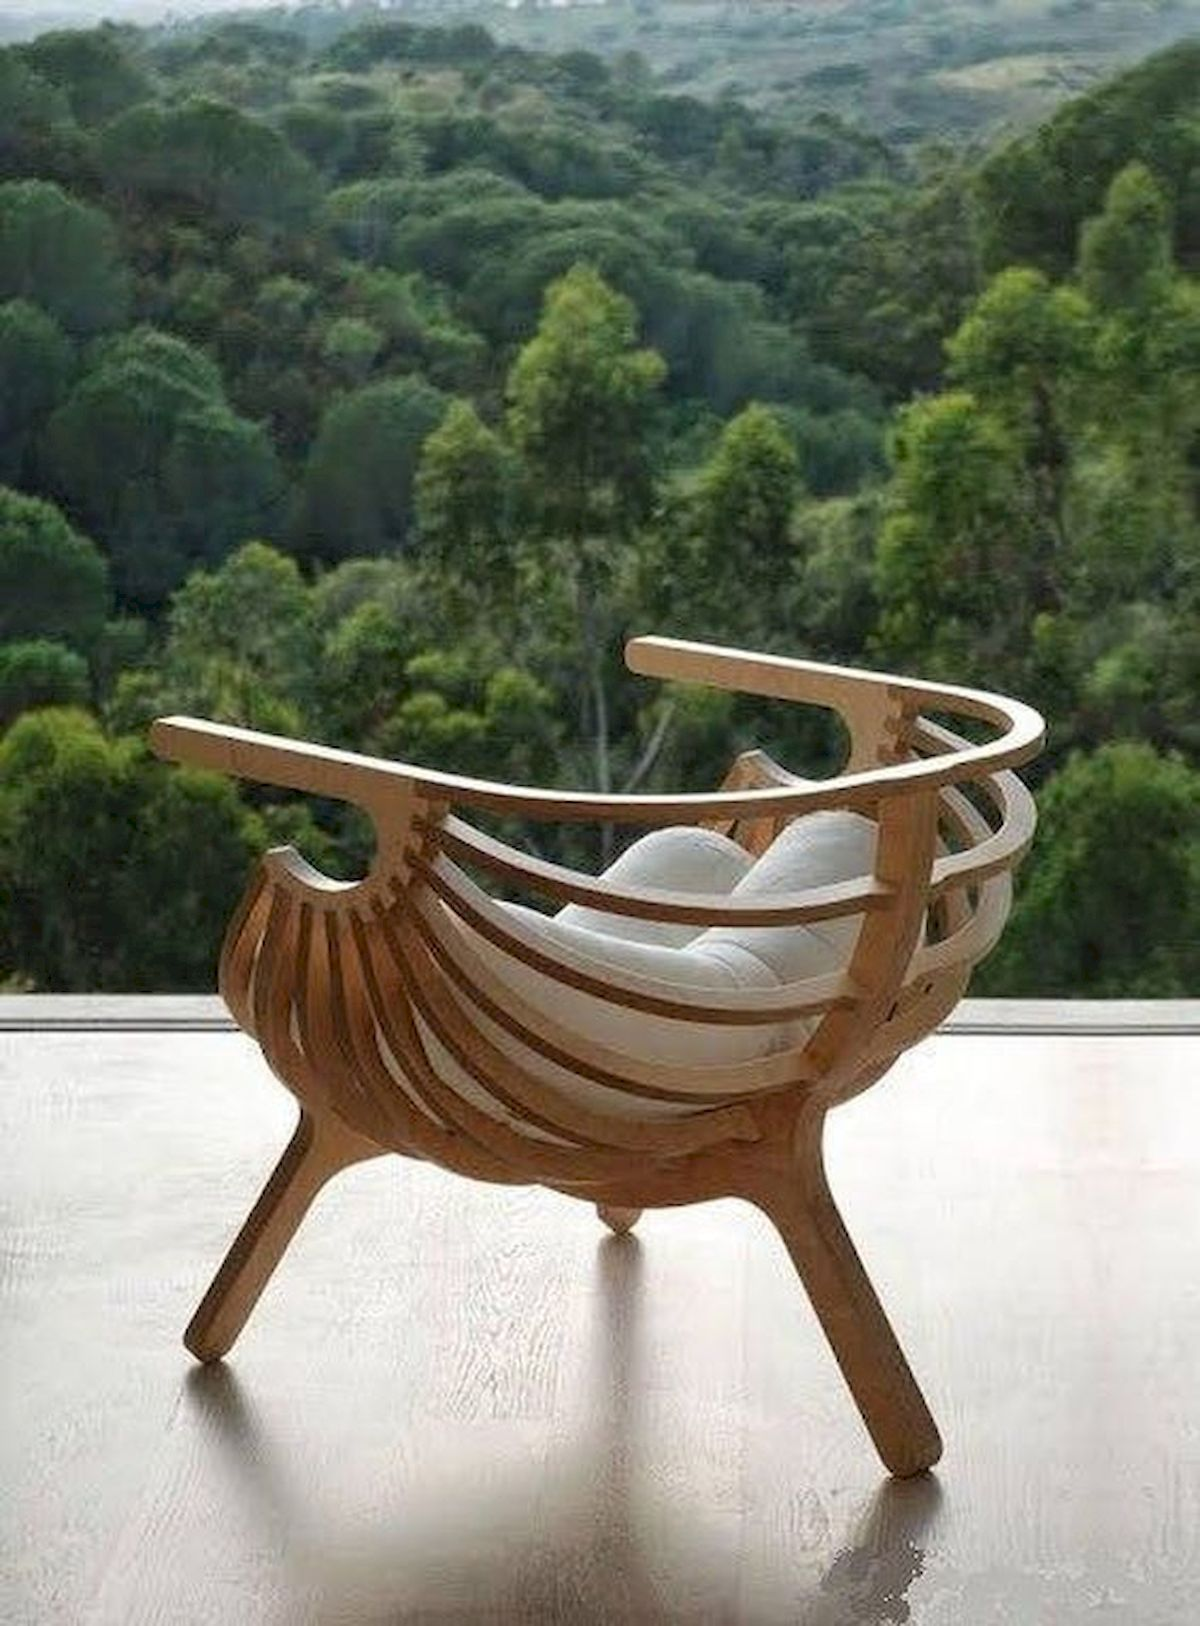 50 DIY Relaxing Chairs Design Ideas That Will Make Your Home Look Great (25)